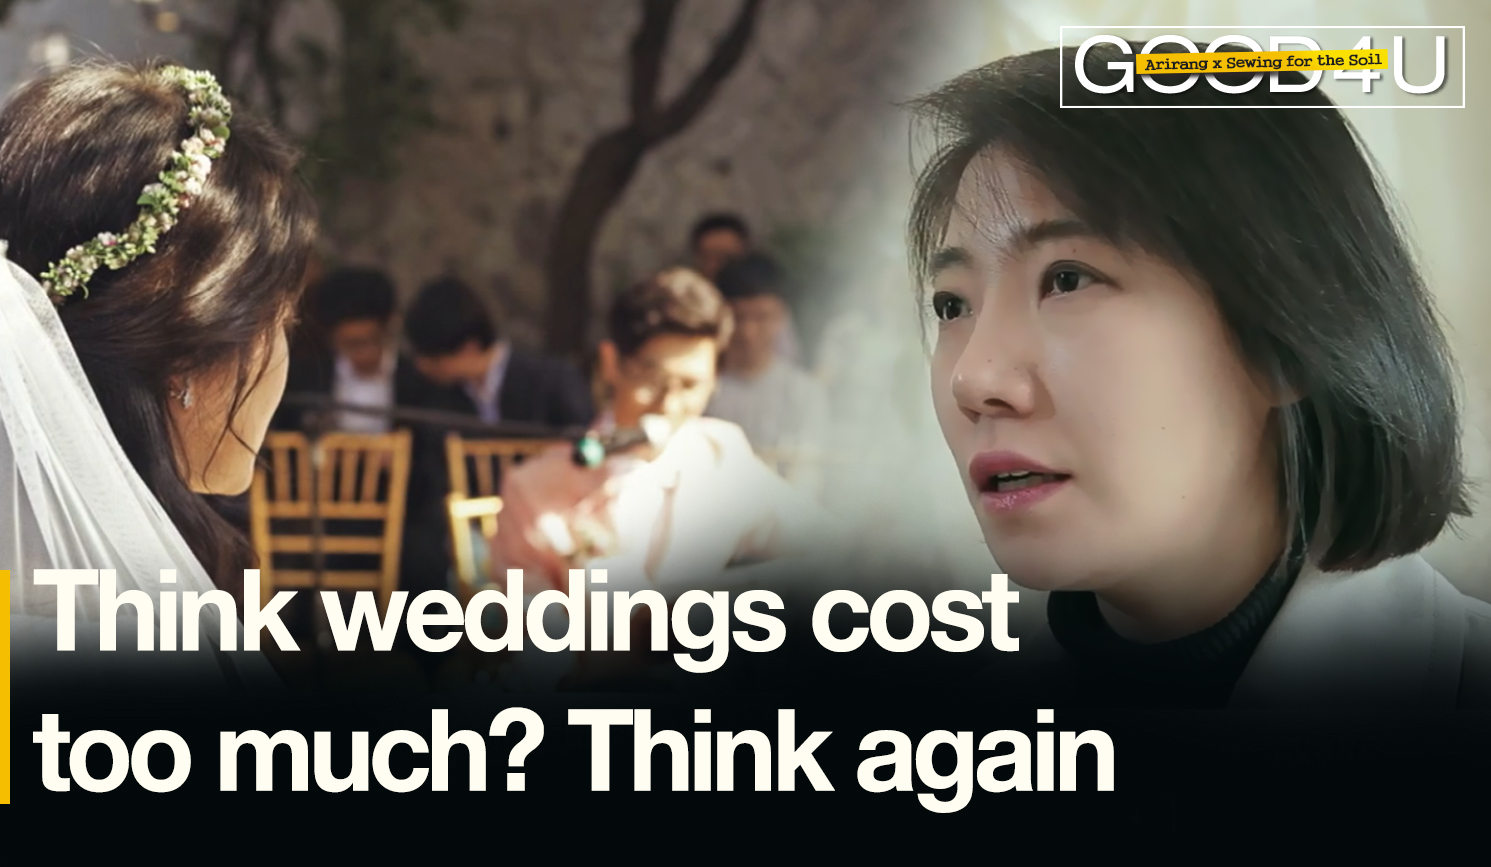 Think weddings cost too much? Think again. [Good4U_SewingforSoil]